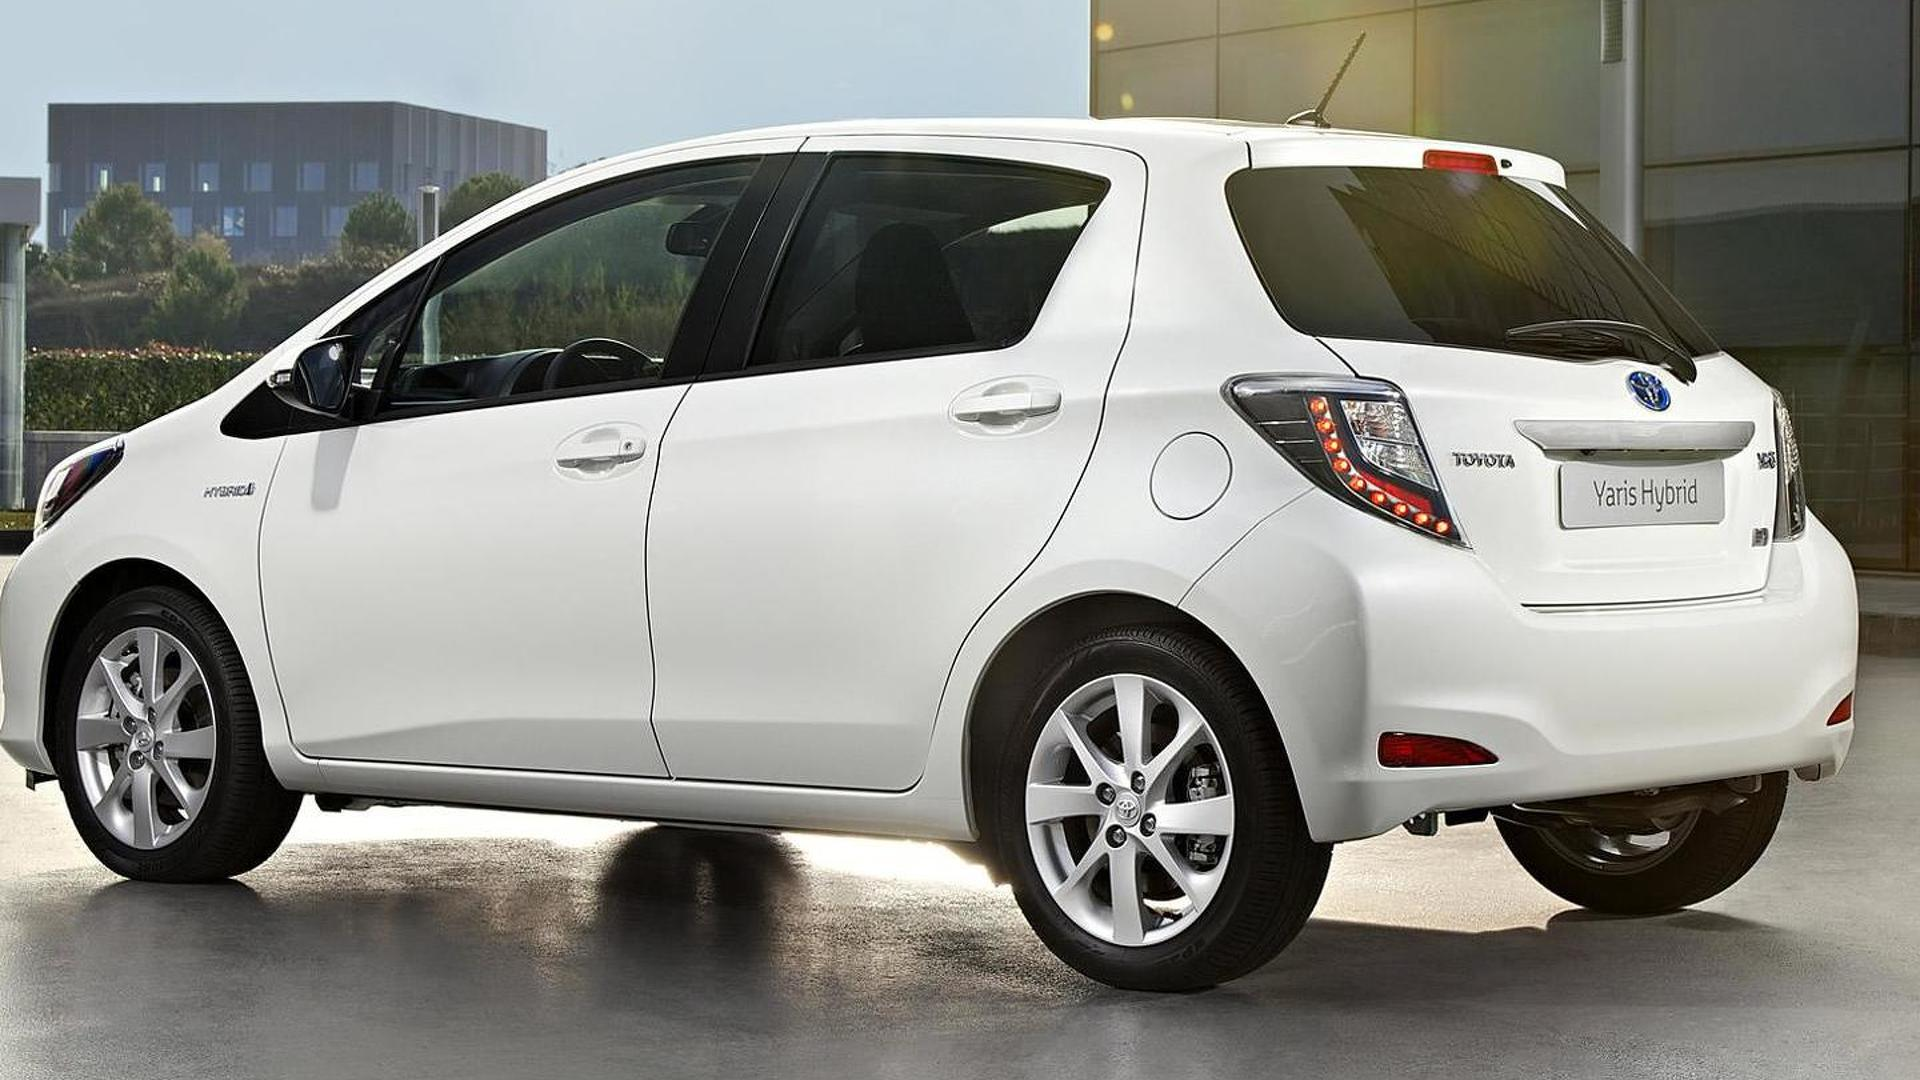 new 2013 toyota yaris hybrid specs and prices announced de. Black Bedroom Furniture Sets. Home Design Ideas